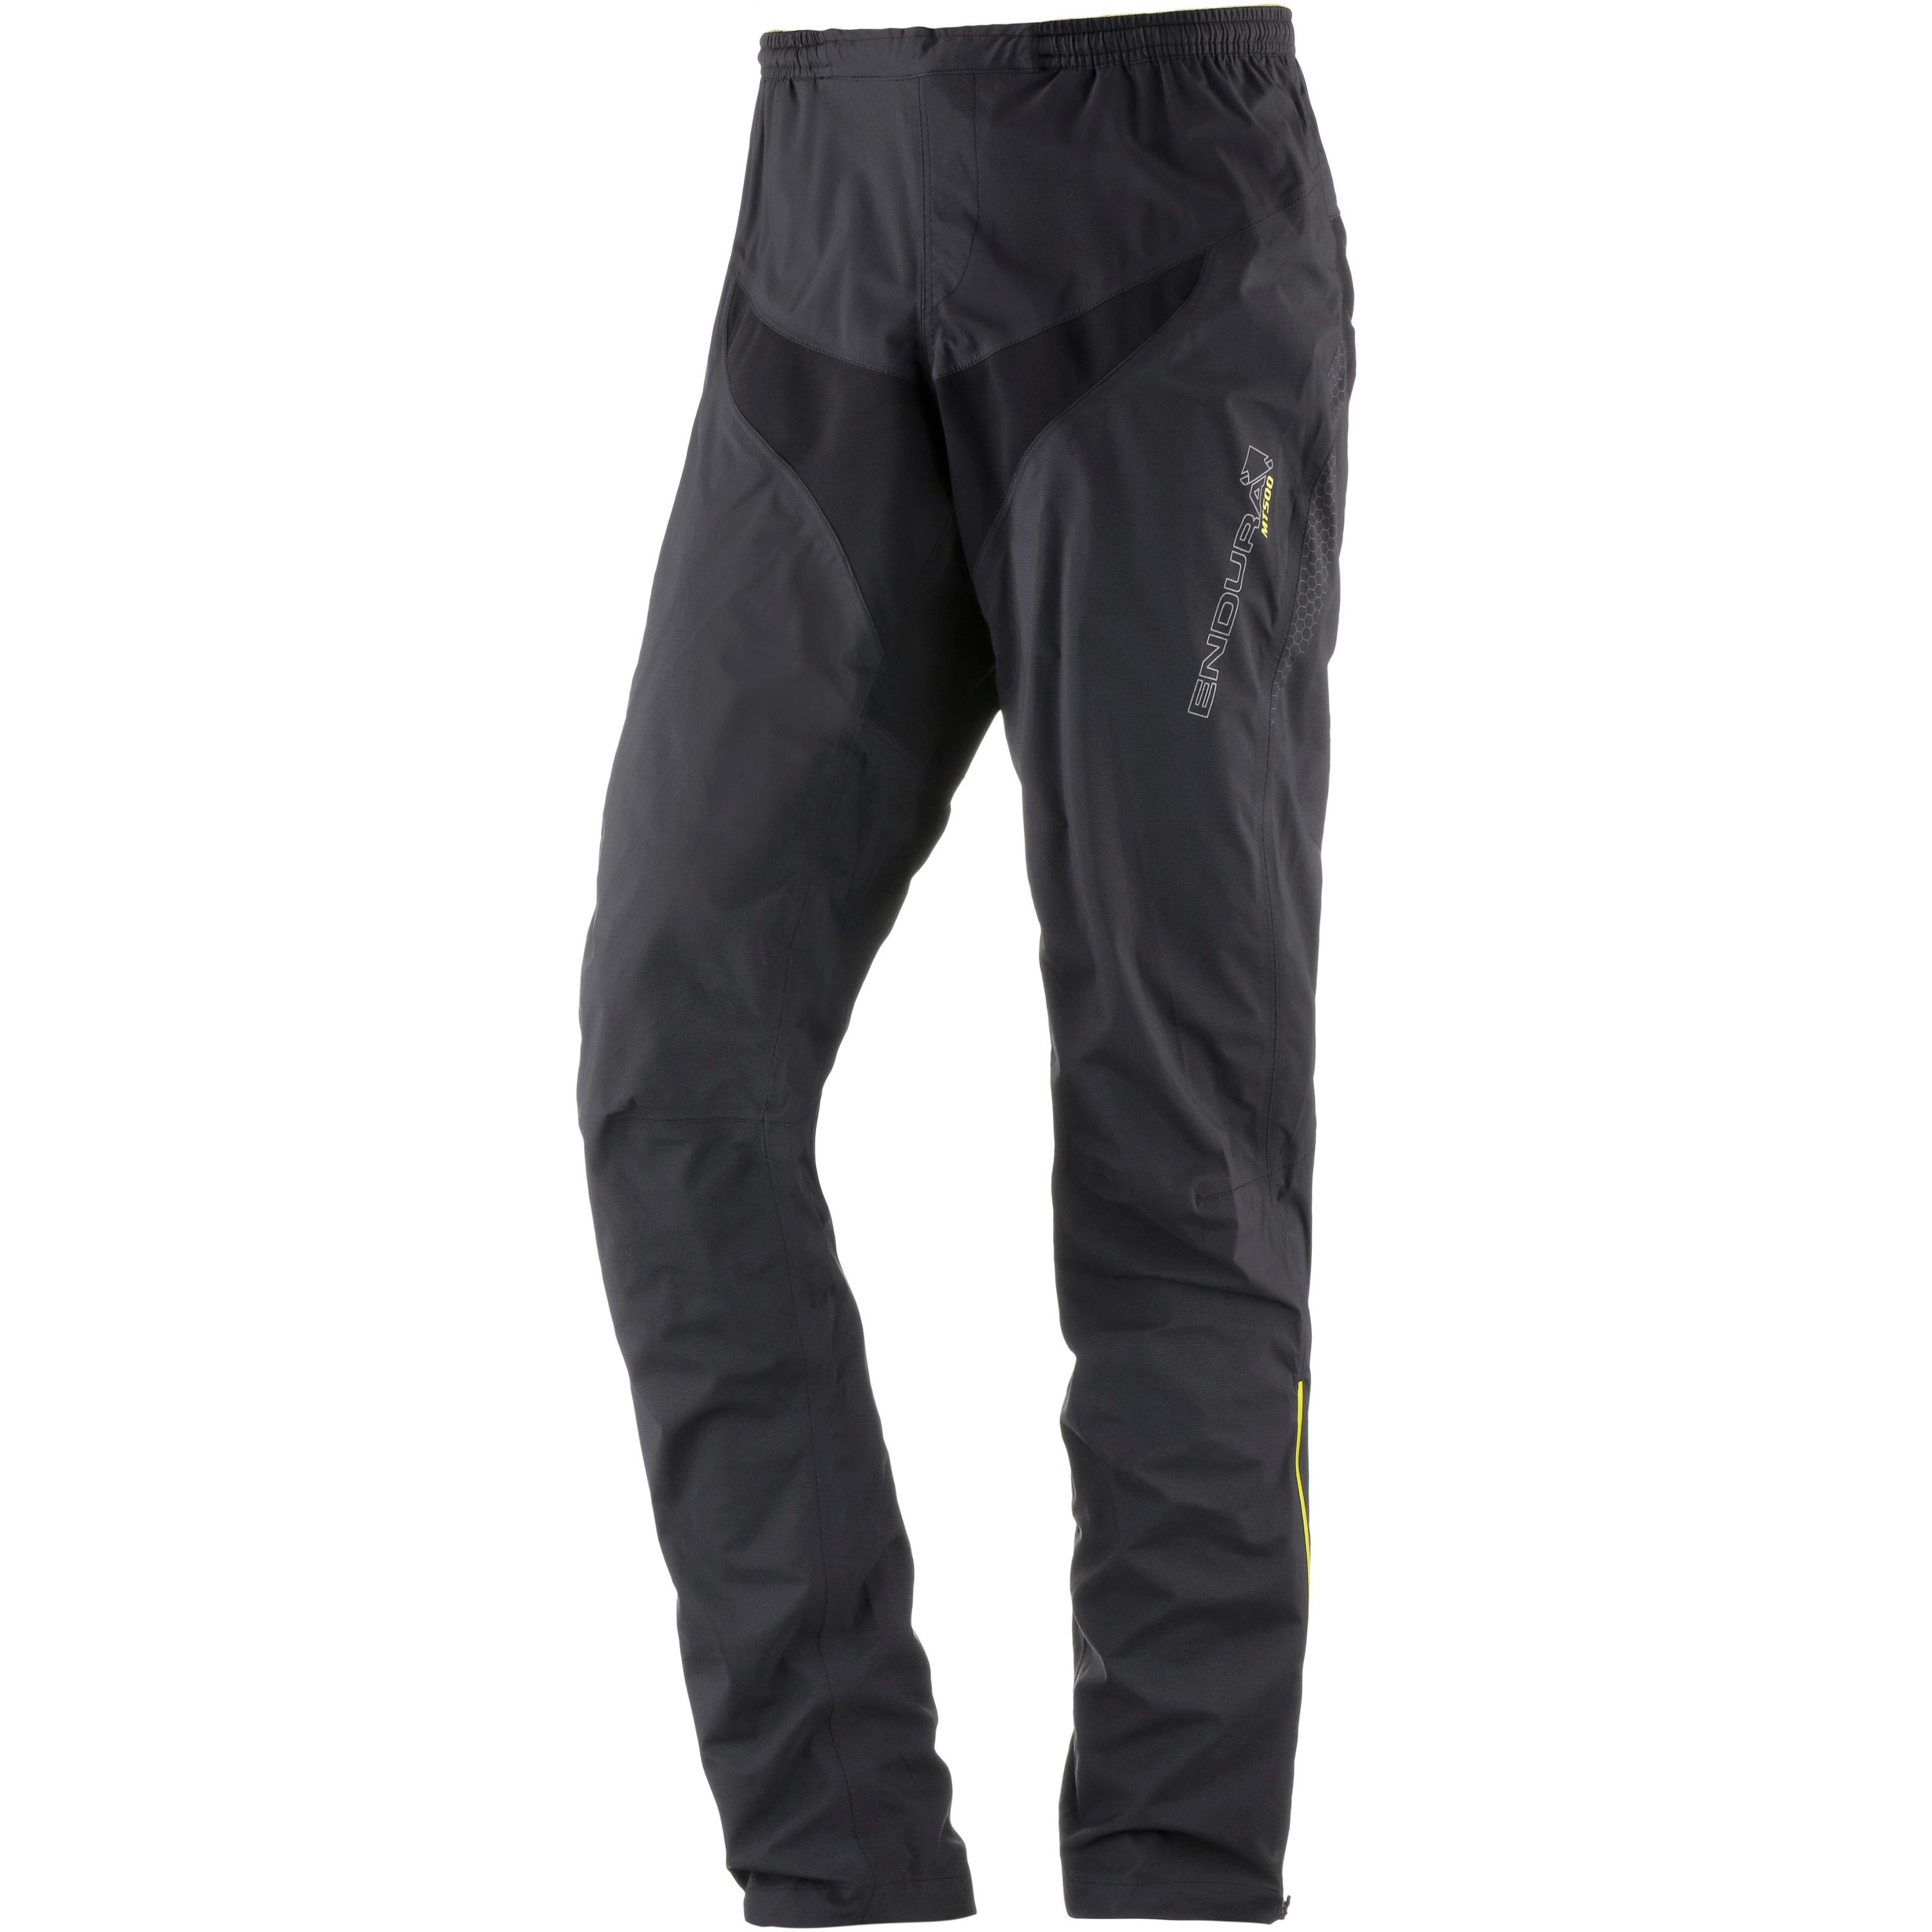 Image of Endura MT500 Waterproof Trouser II Fahrradhose Herren